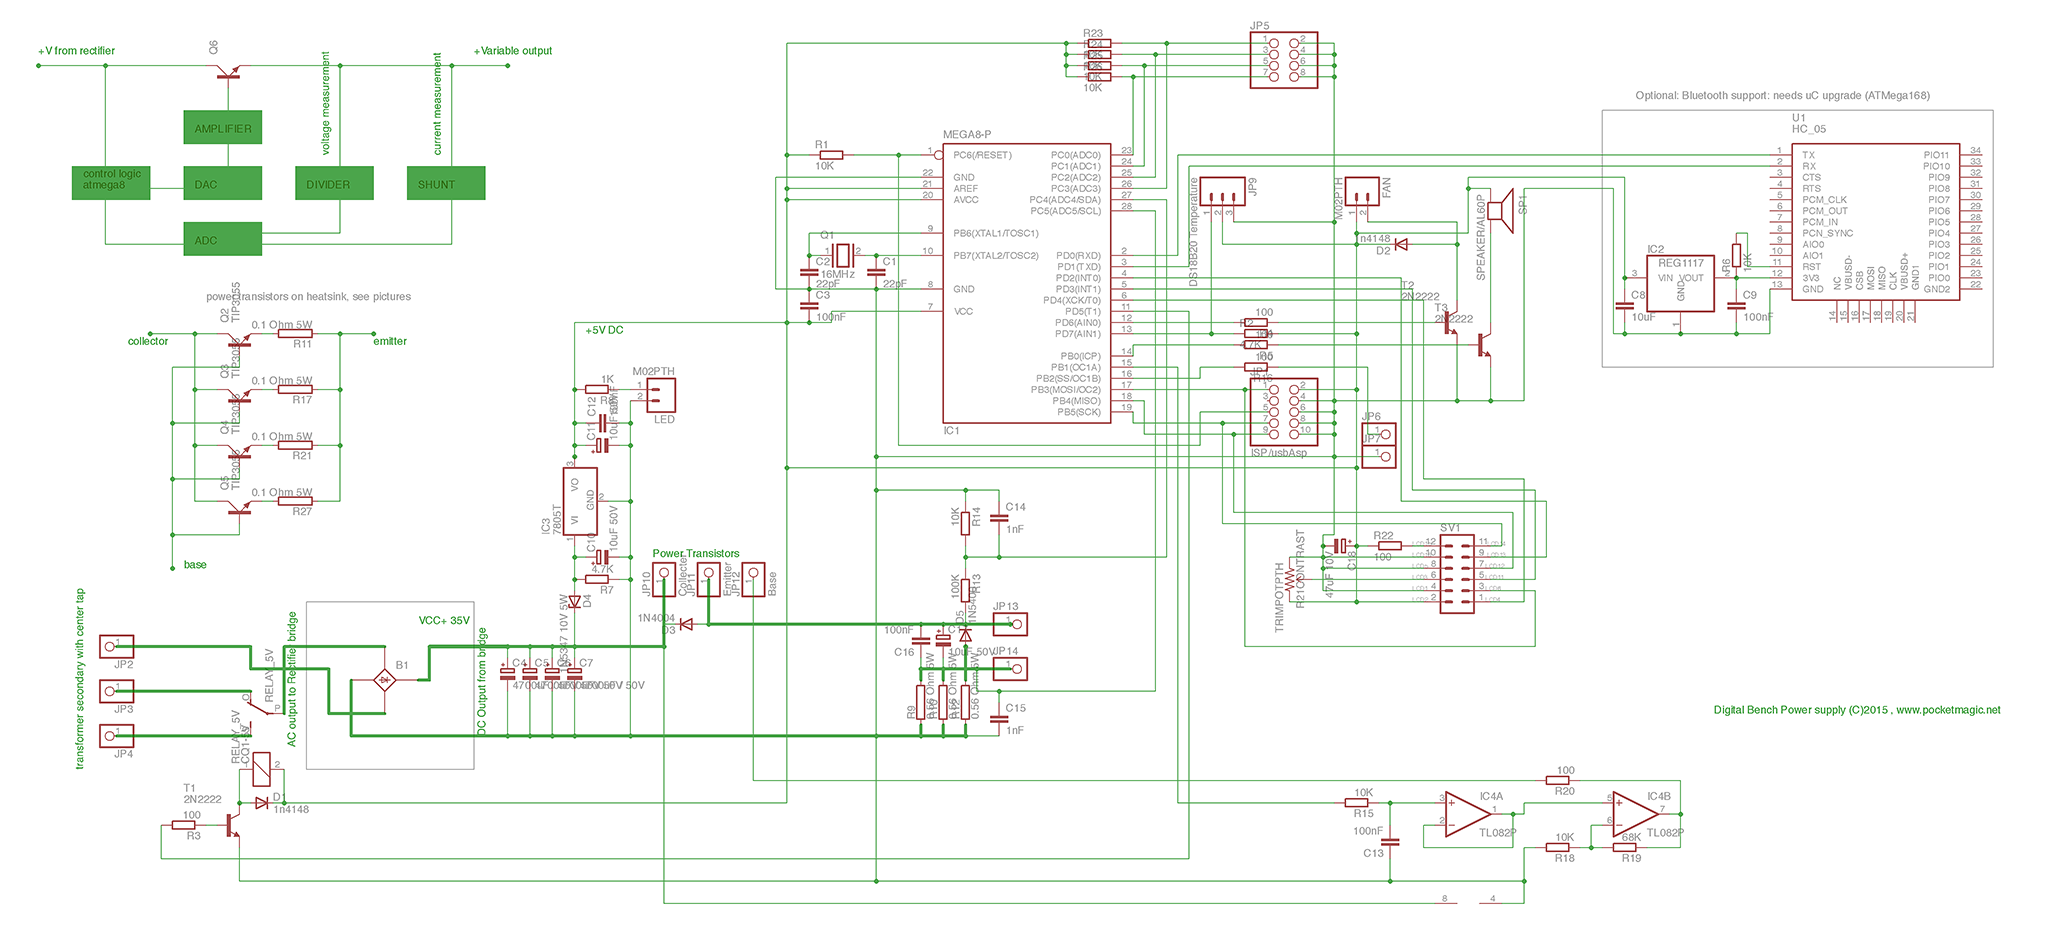 Digital Bench Power Supply Pocketmagic Simple Voltmeter Pic16f877a Schematic Circuit Diagram Pcb Sch